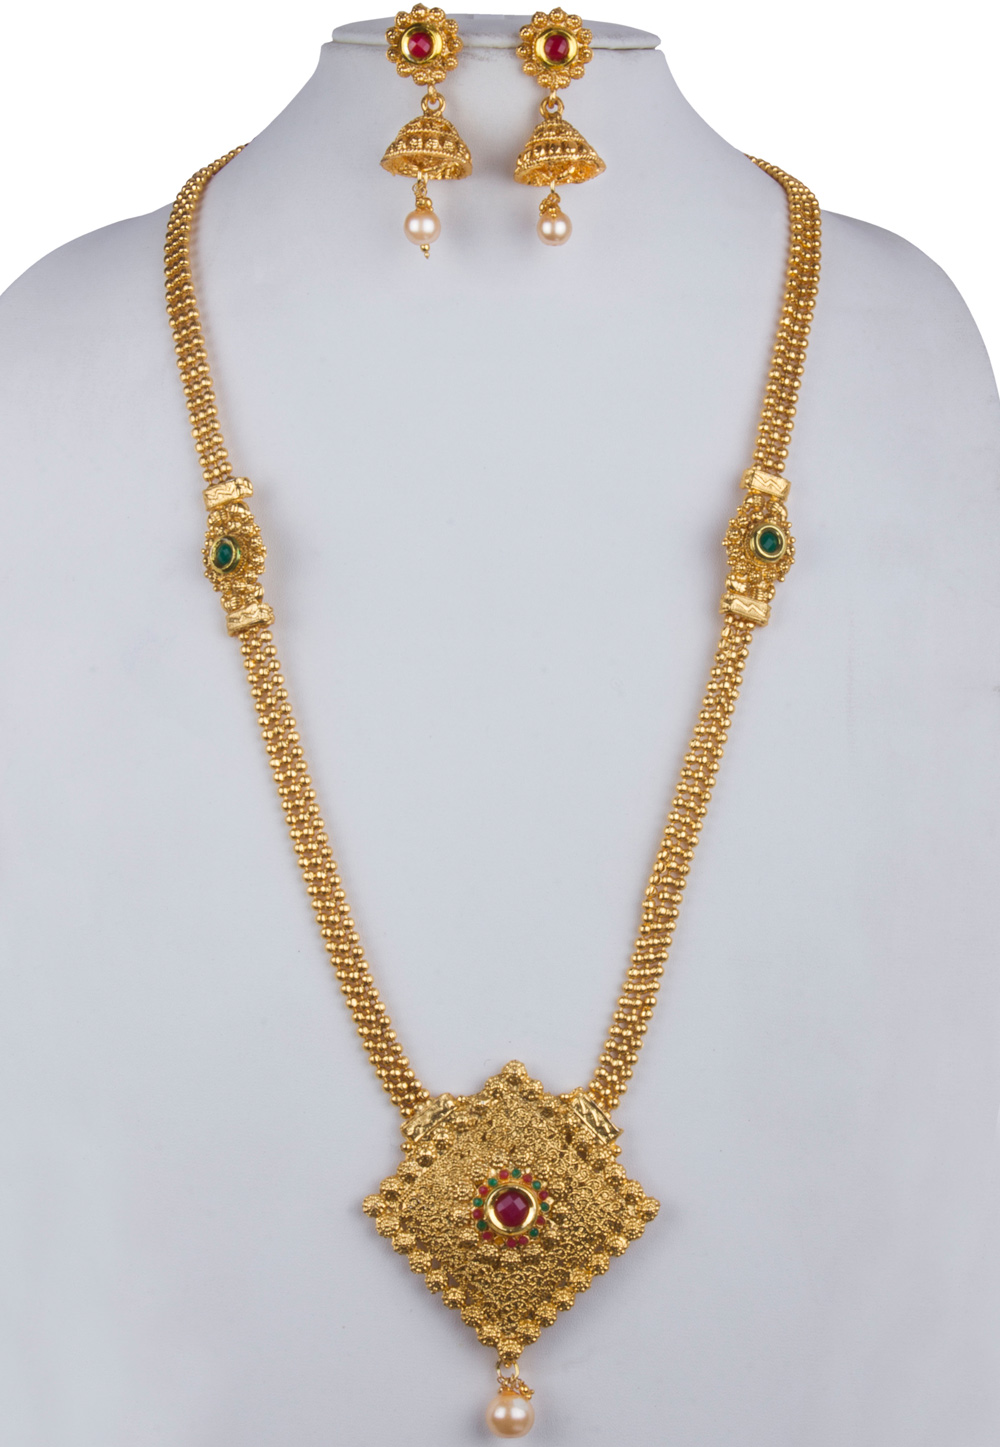 Golden Alloy Necklace With Earrings 157129